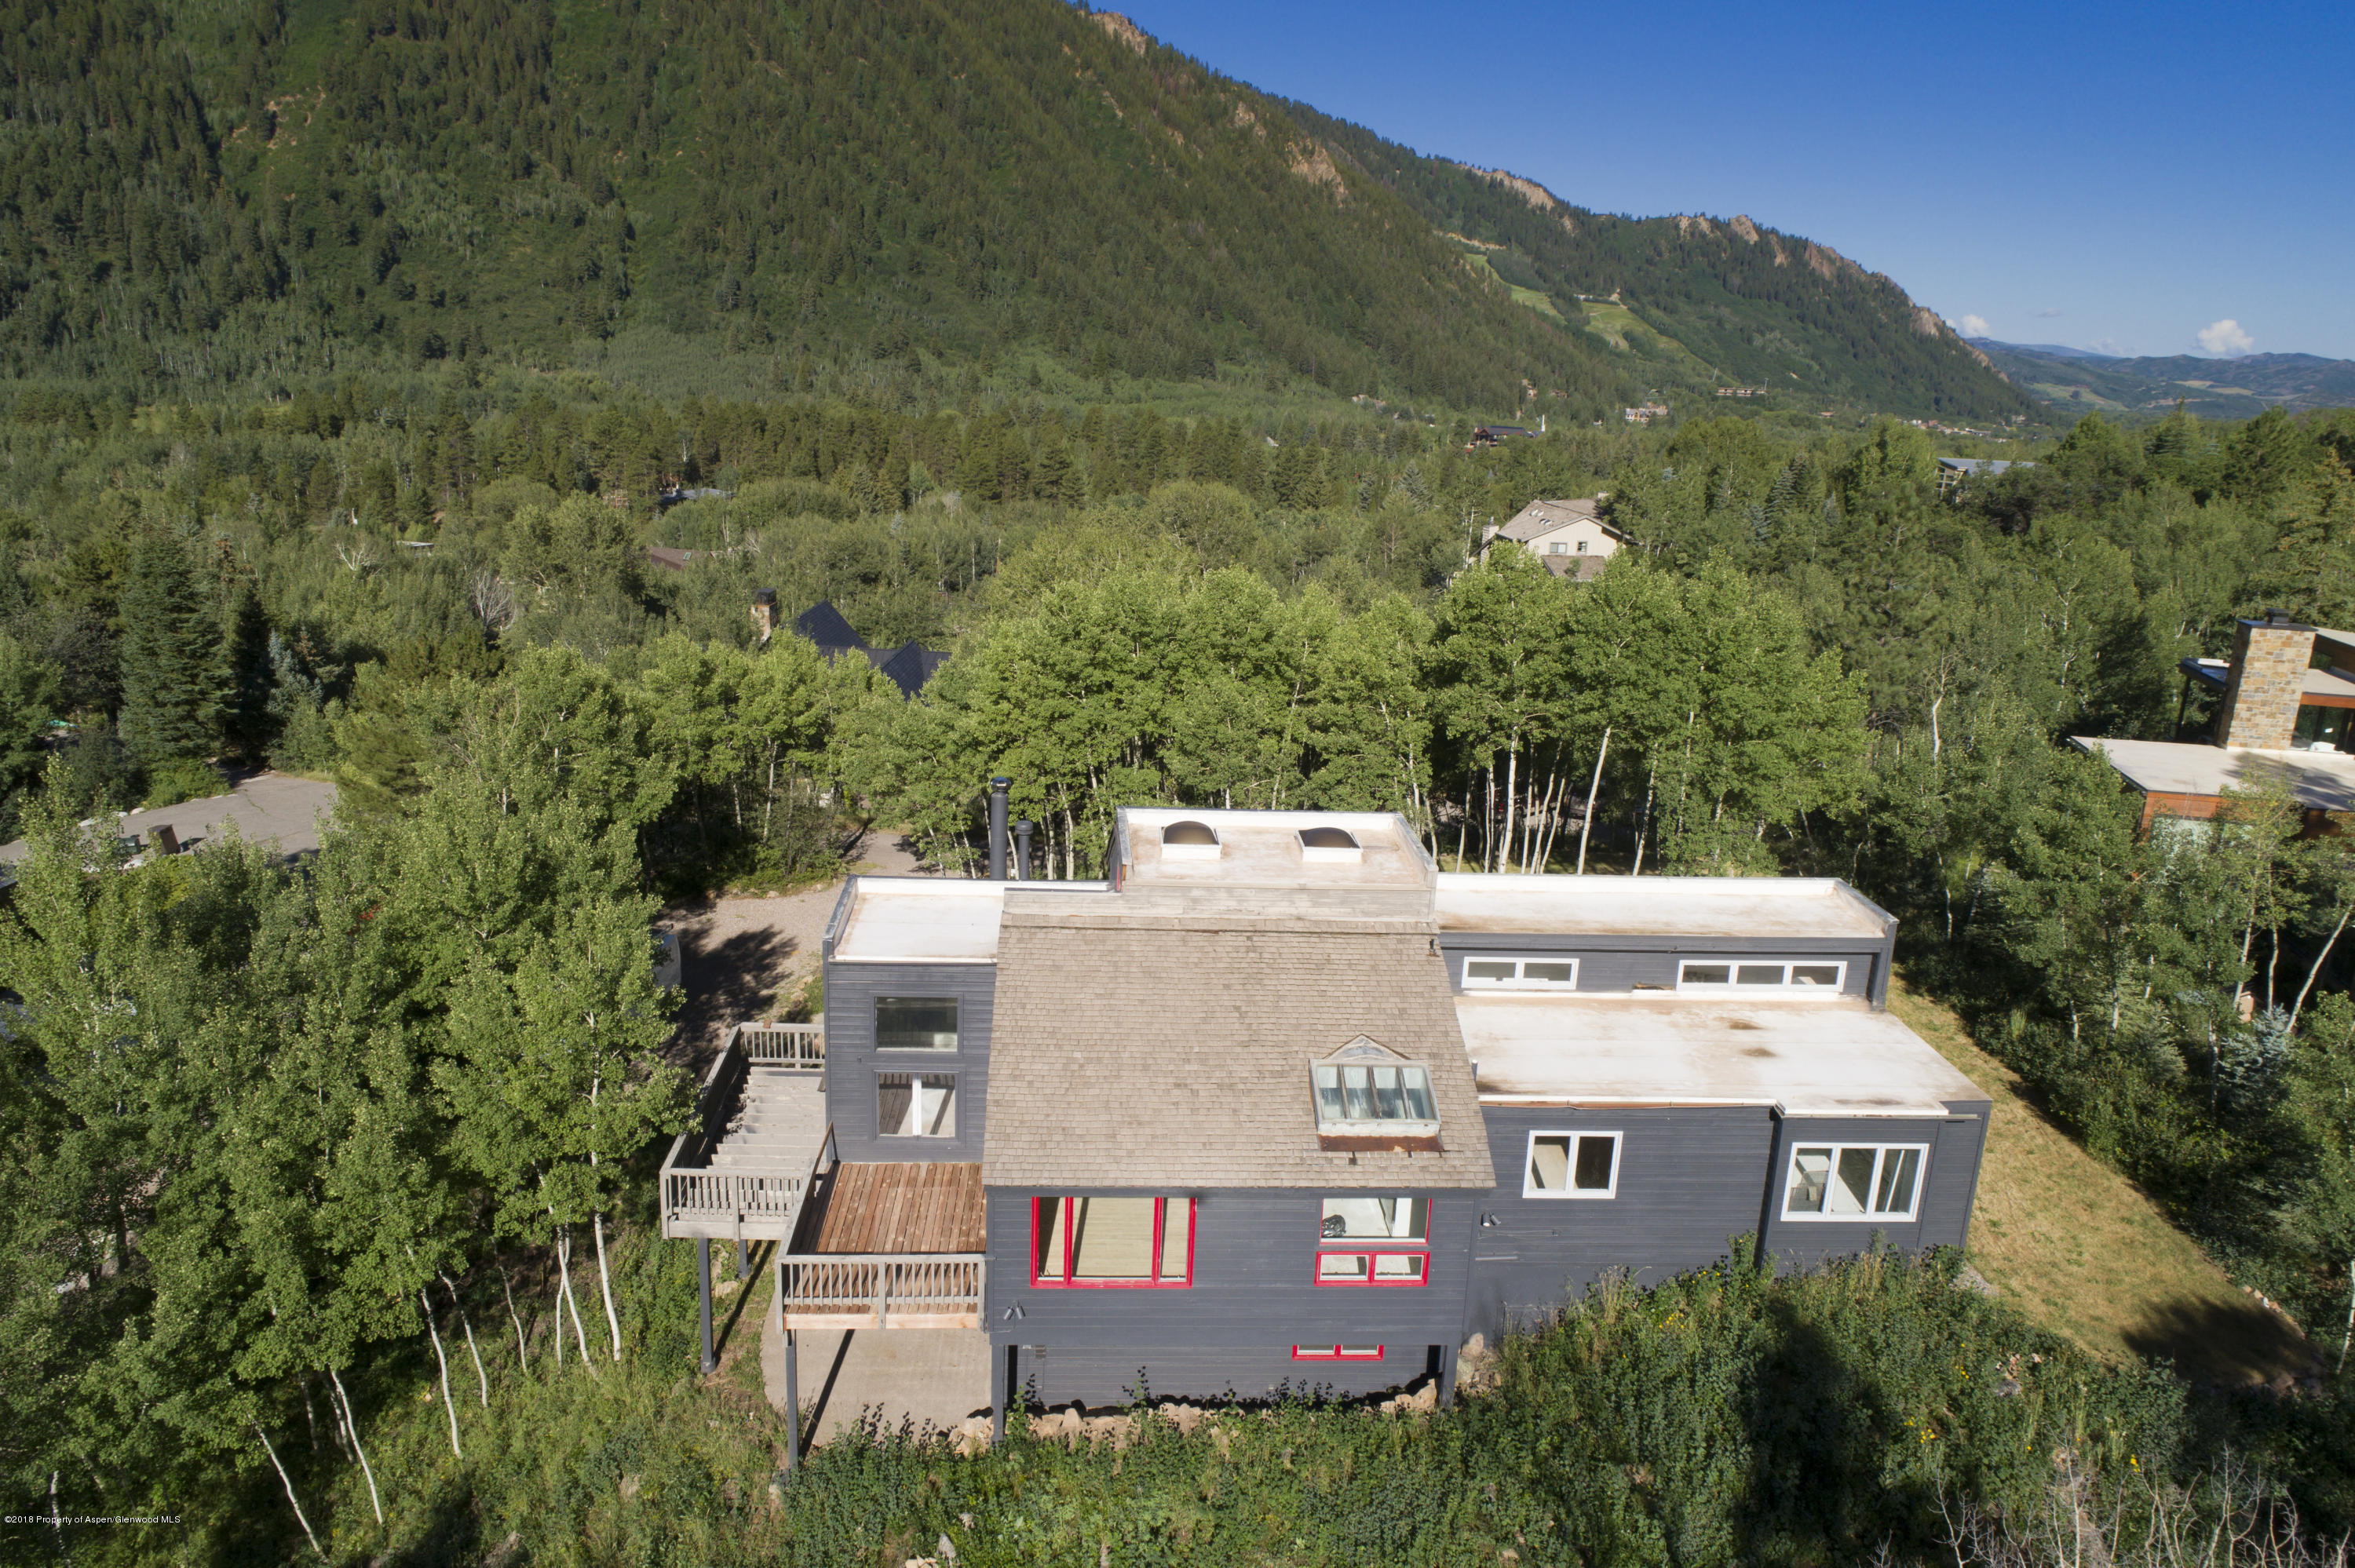 97 Mountain Laurel Court - East Aspen, Colorado